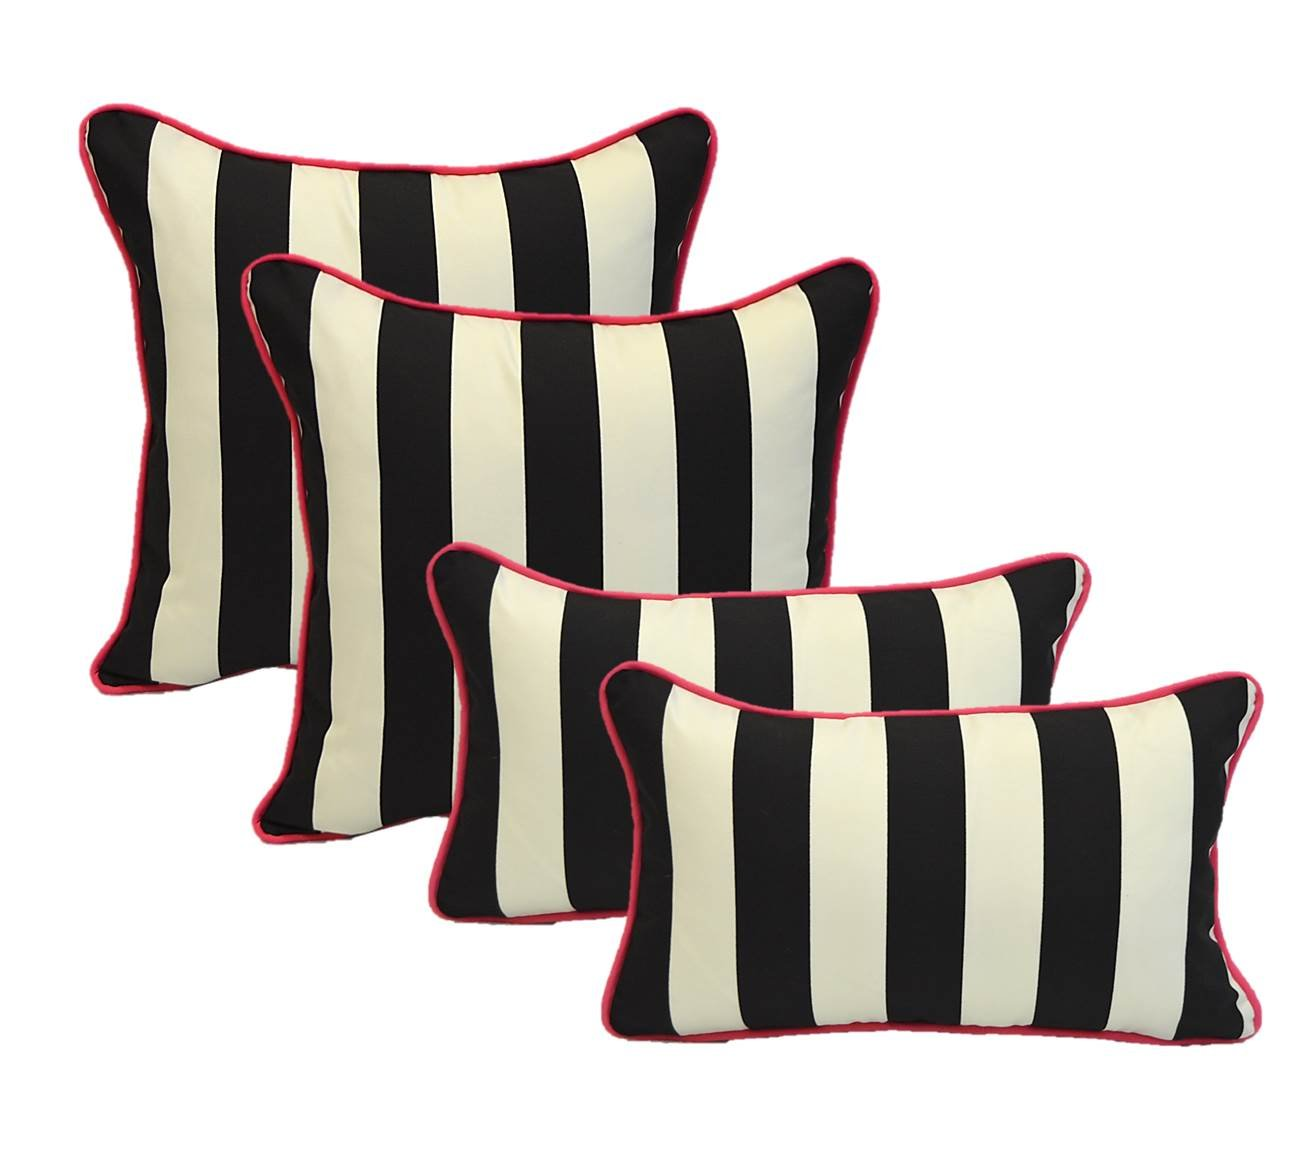 Set of 4 - Indoor / Outdoor 17'' Square & Rectangle / Lumbar Decorative Throw / Toss Pillows - Black and White Stripe w/ Hot Pink Piping / Cording - Zipper Cover & Insert